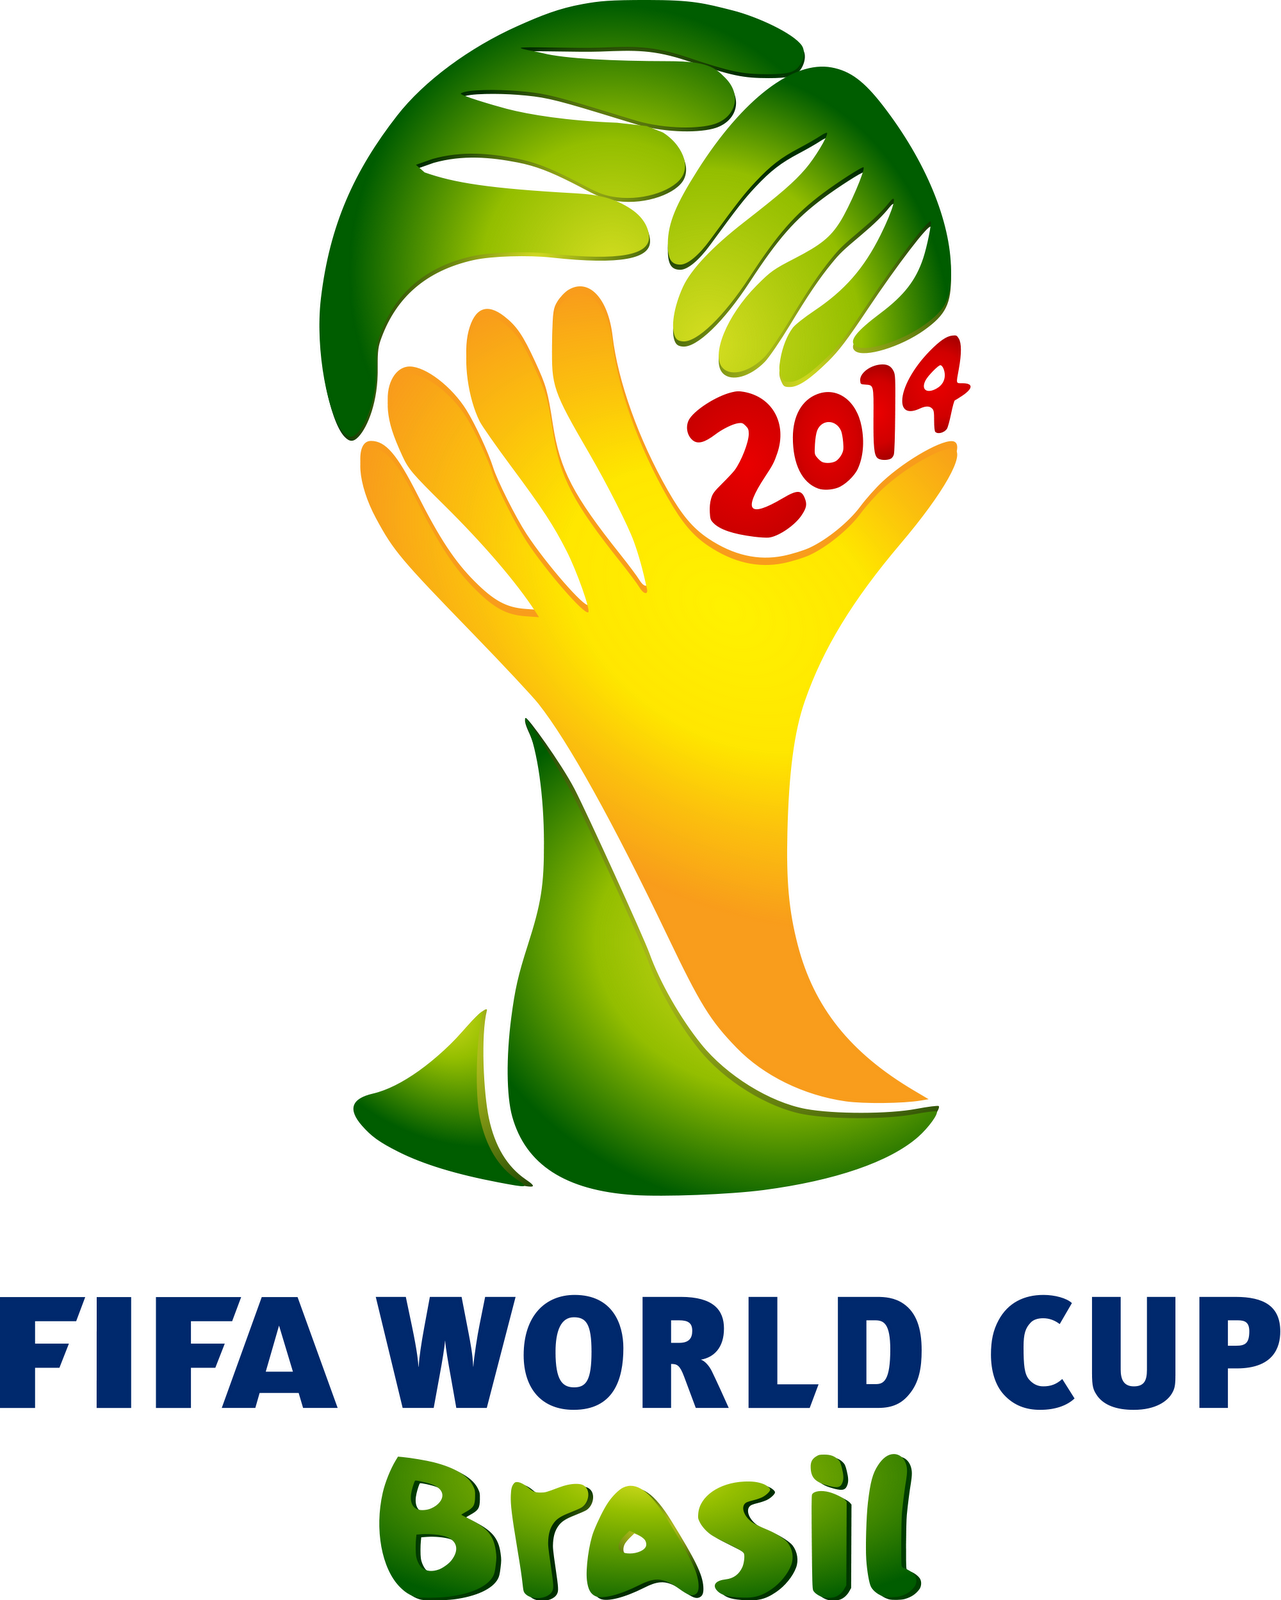 FIFA 2014 World Cup Brazil logo Picture